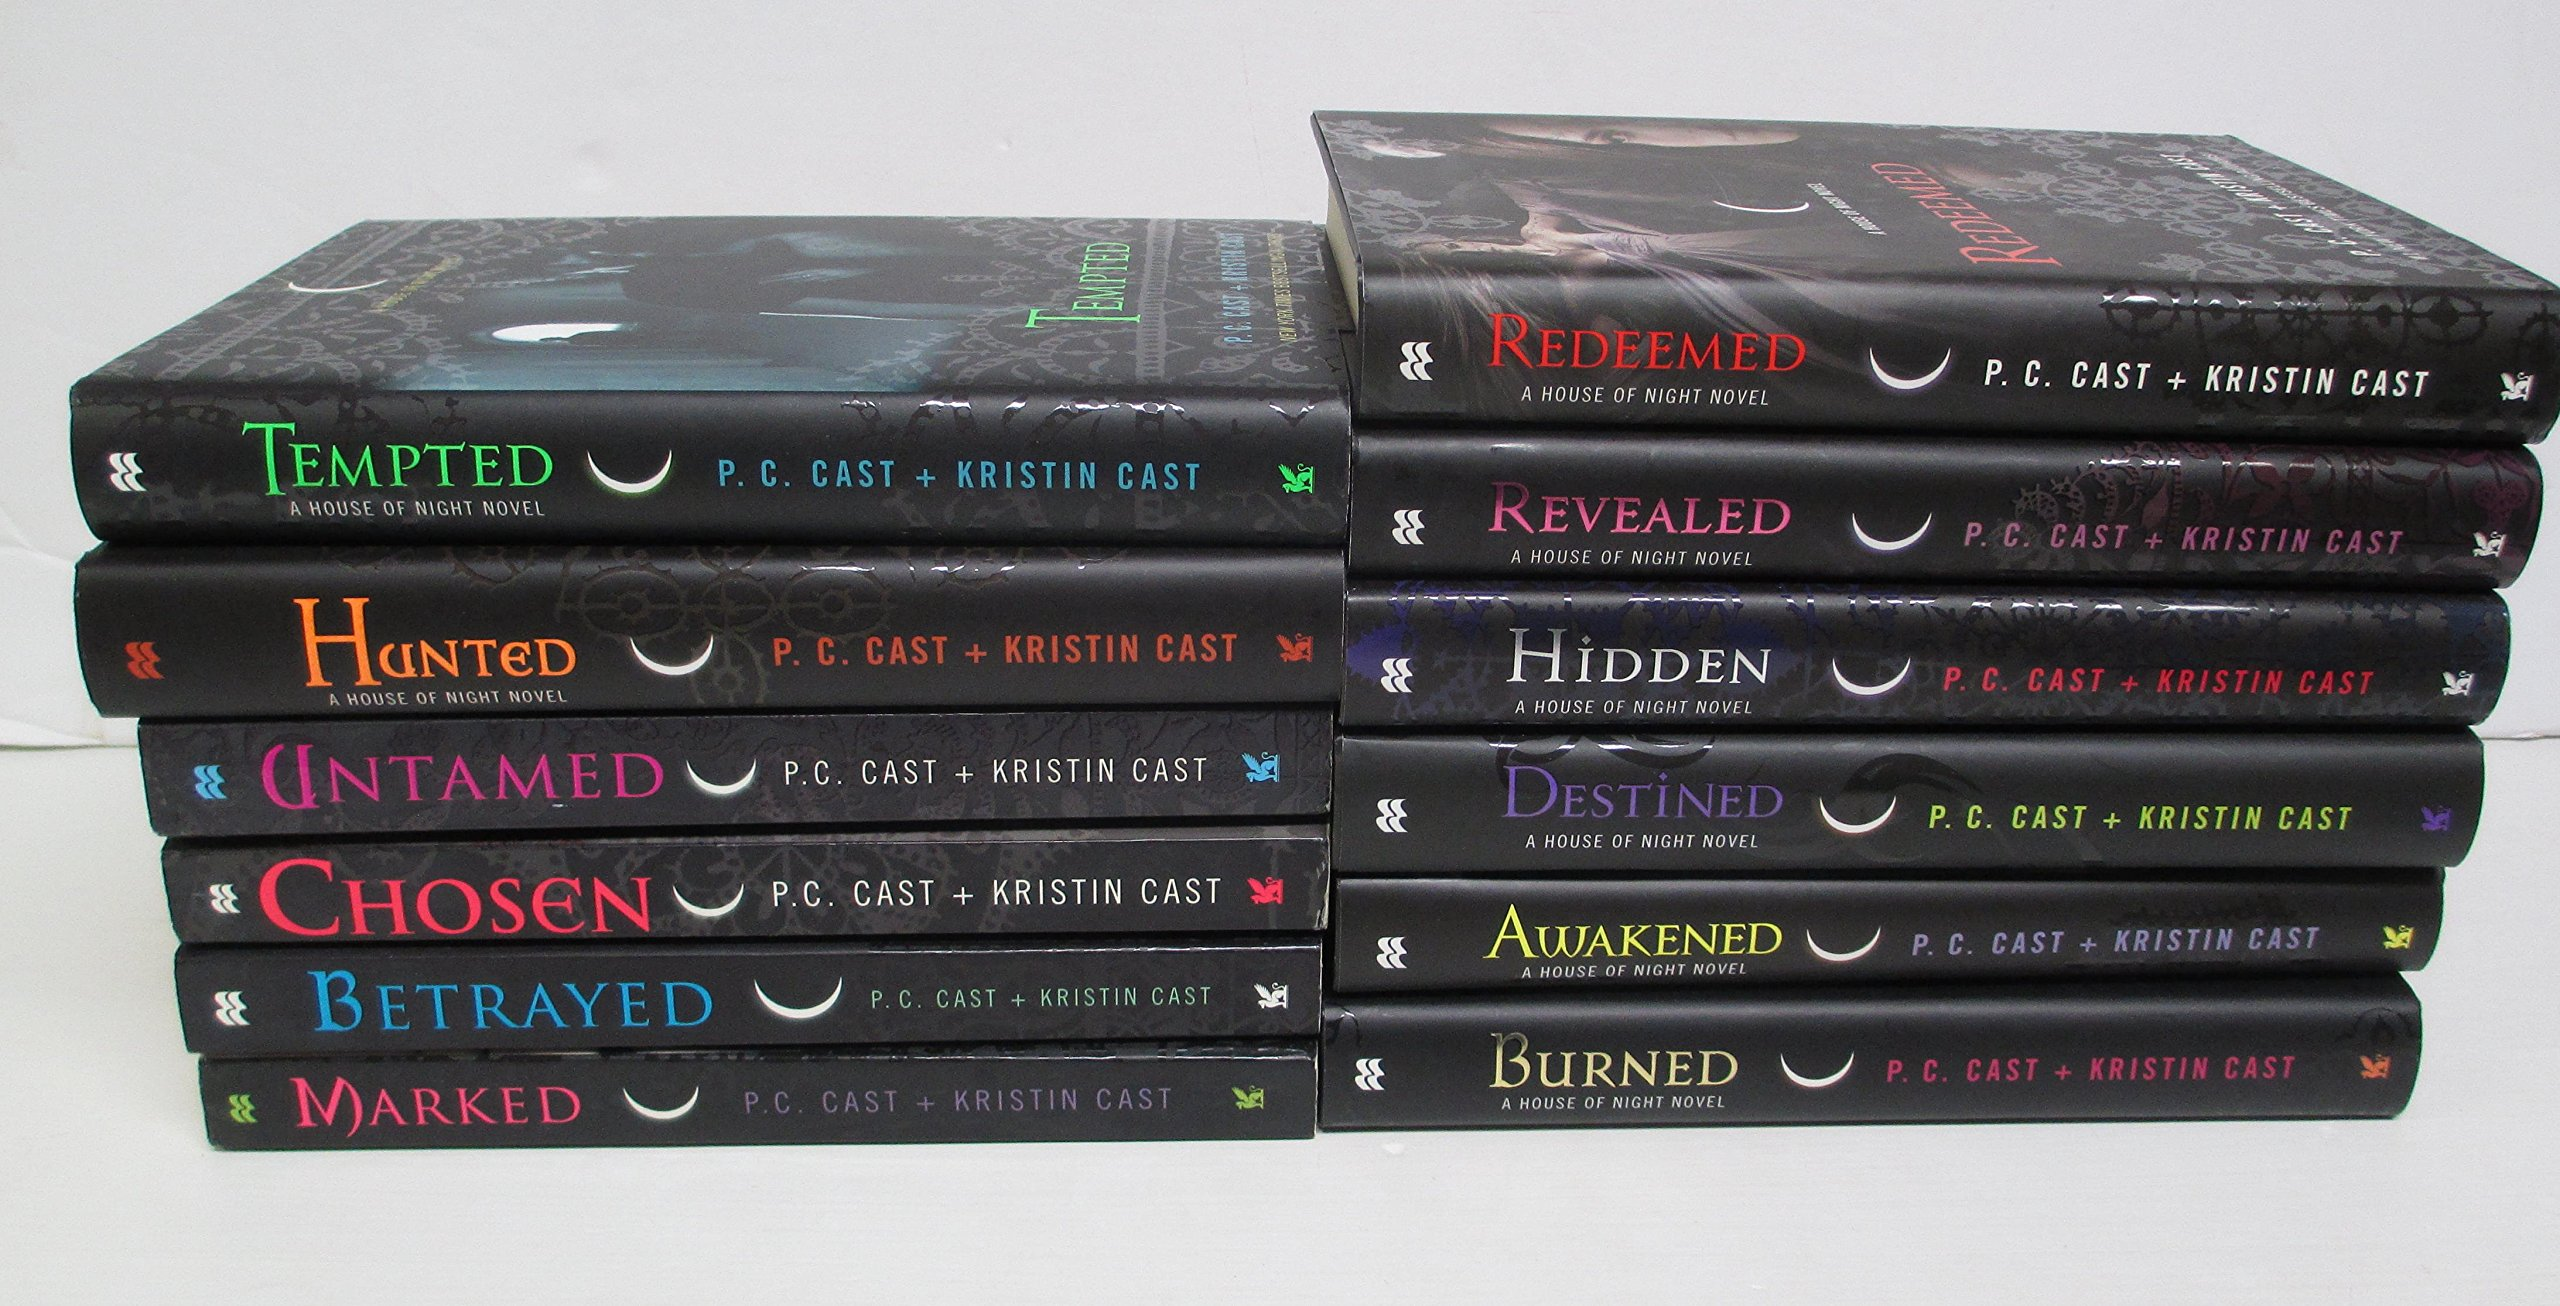 House of Night Novels Complete 12 volumes: P. C. Cast and Kristin Cast:  Amazon.com: Books